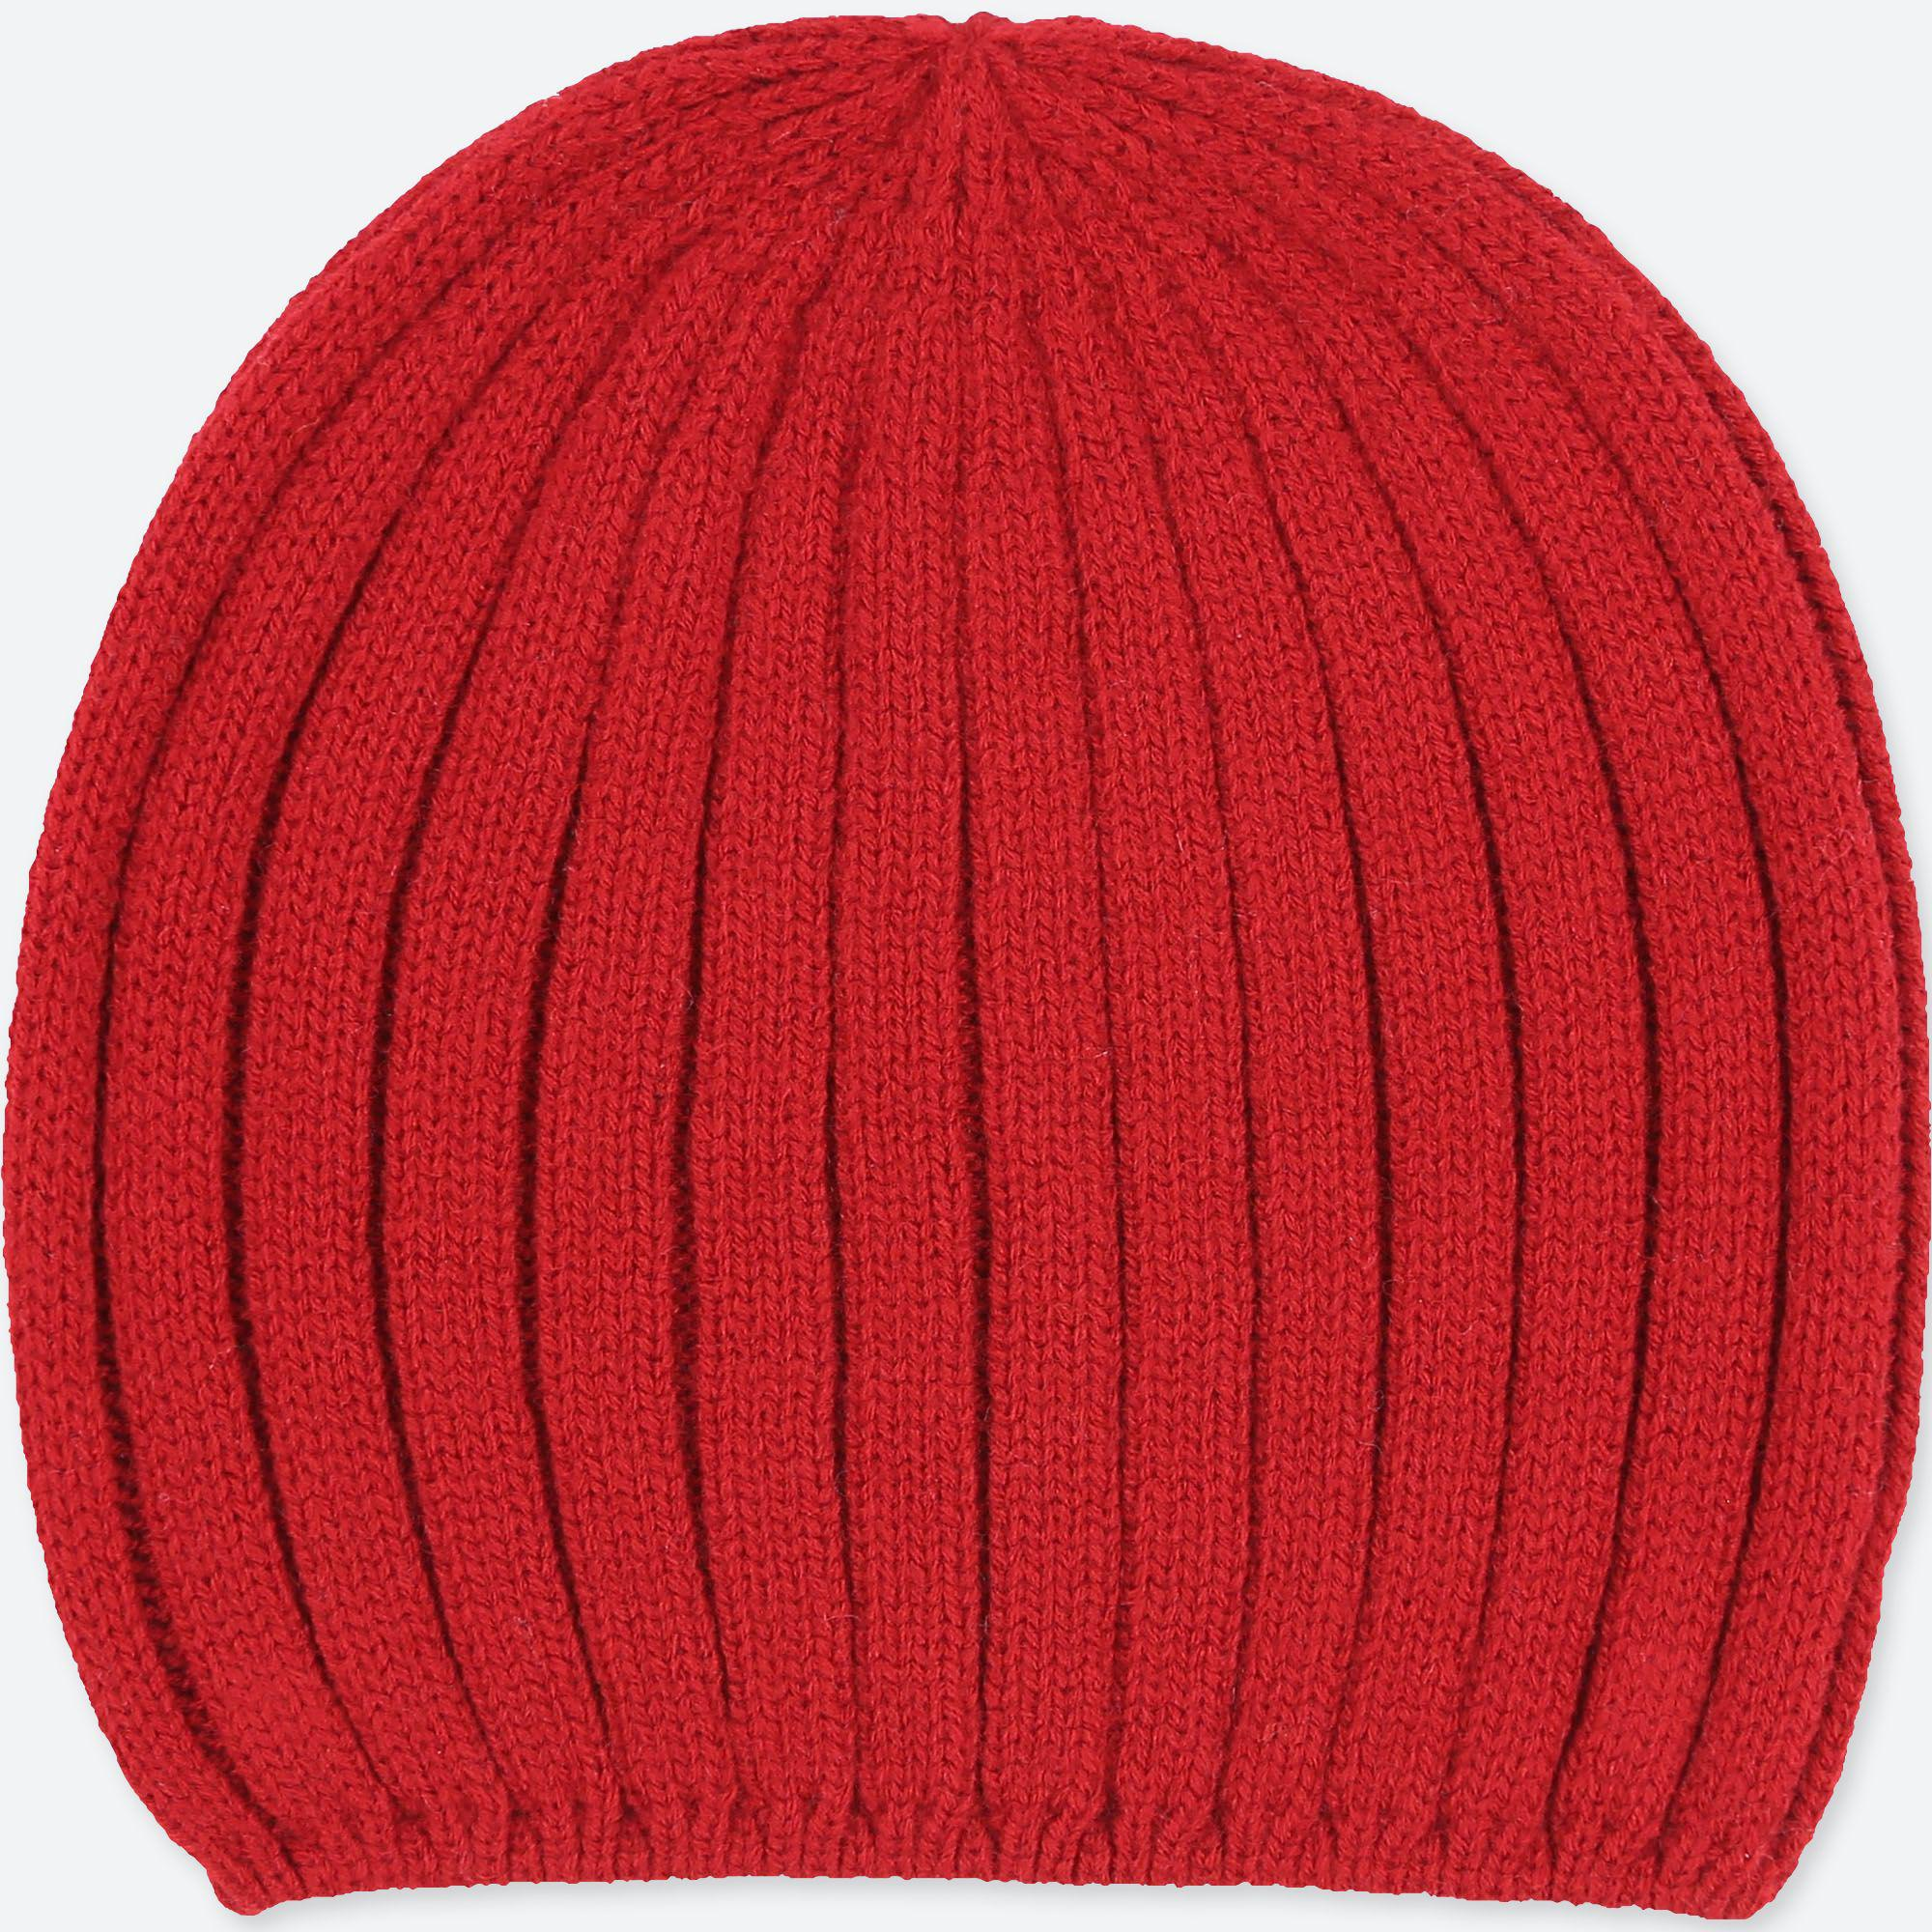 Uniqlo Women Heattech Knitted Beanie in Red - Lyst 64a4becaf31